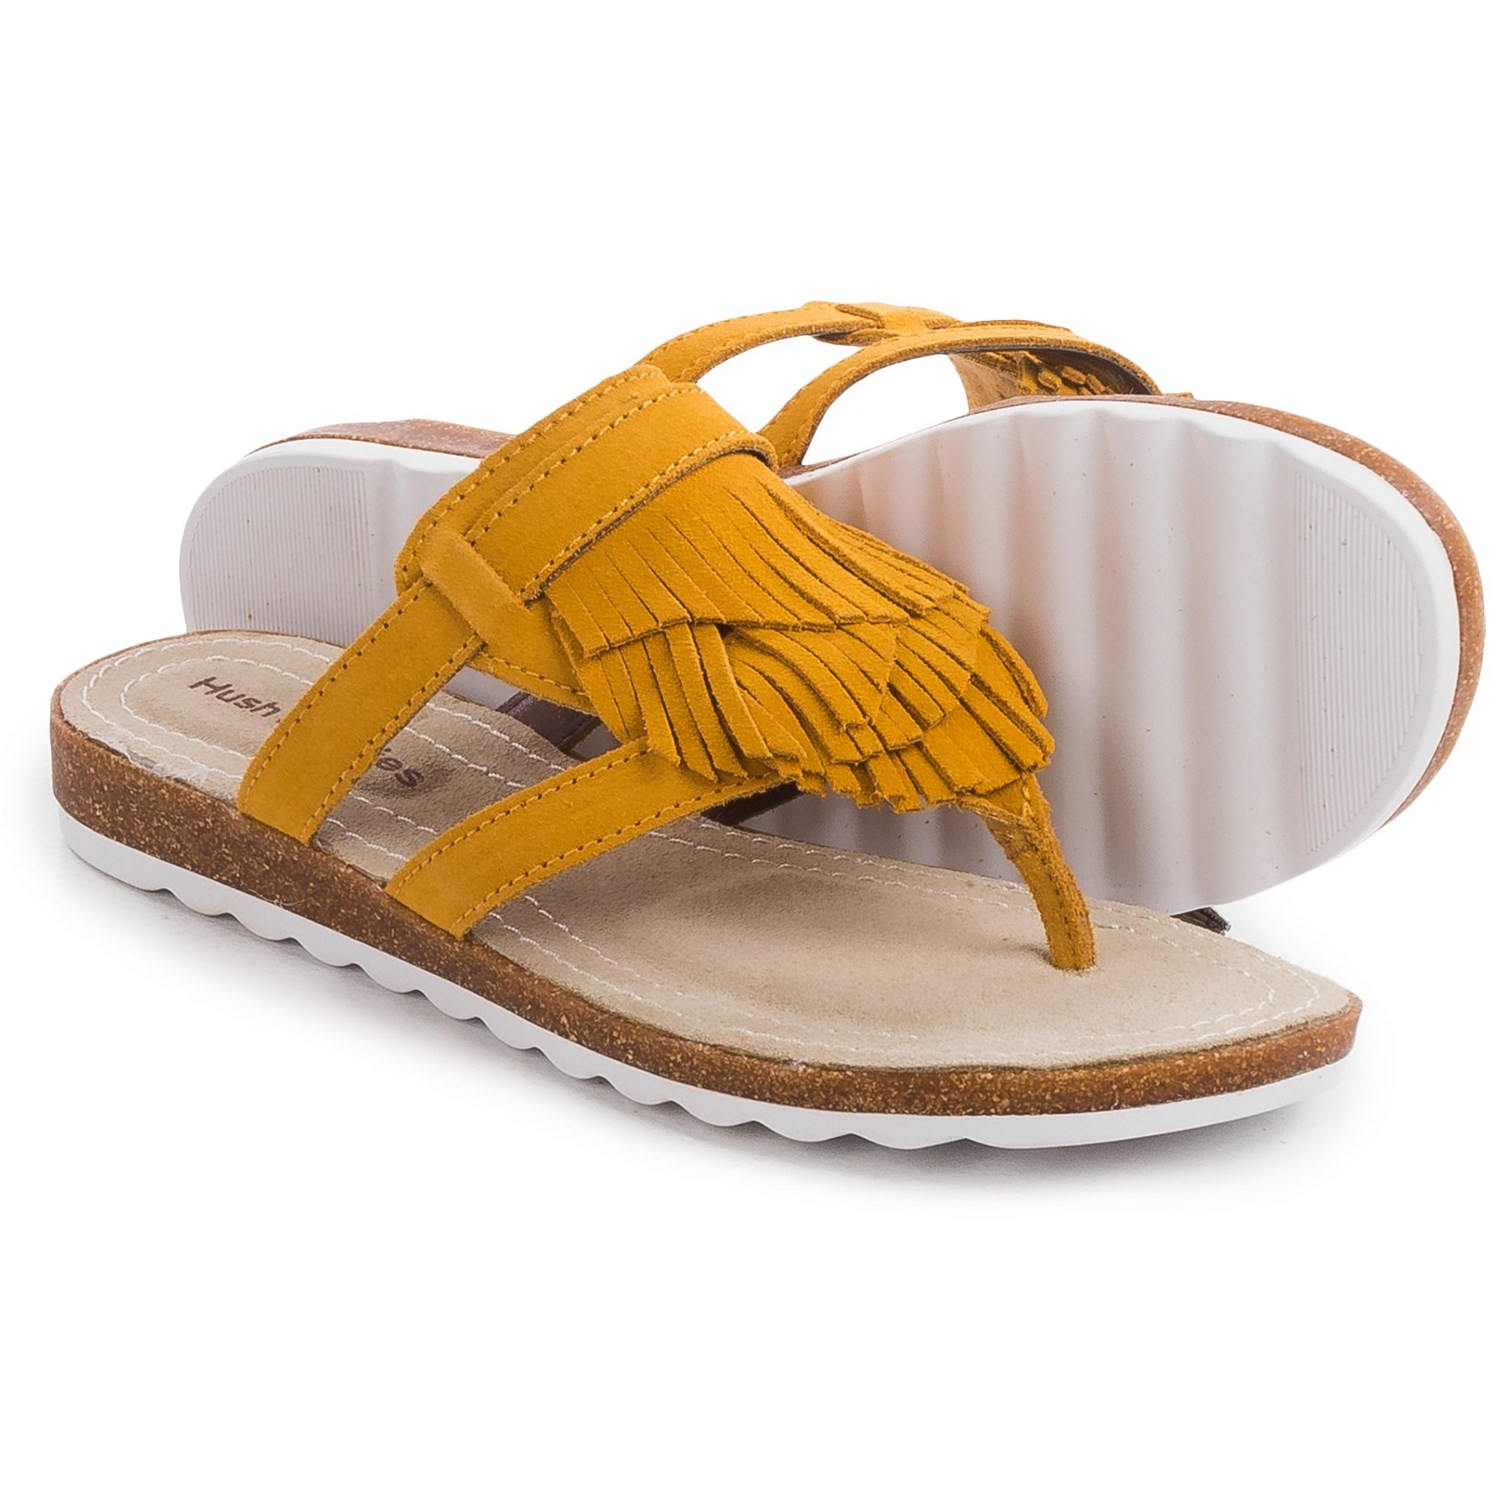 56c0afcab hush puppies sandals cheap   OFF30% The Largest Catalog Discounts